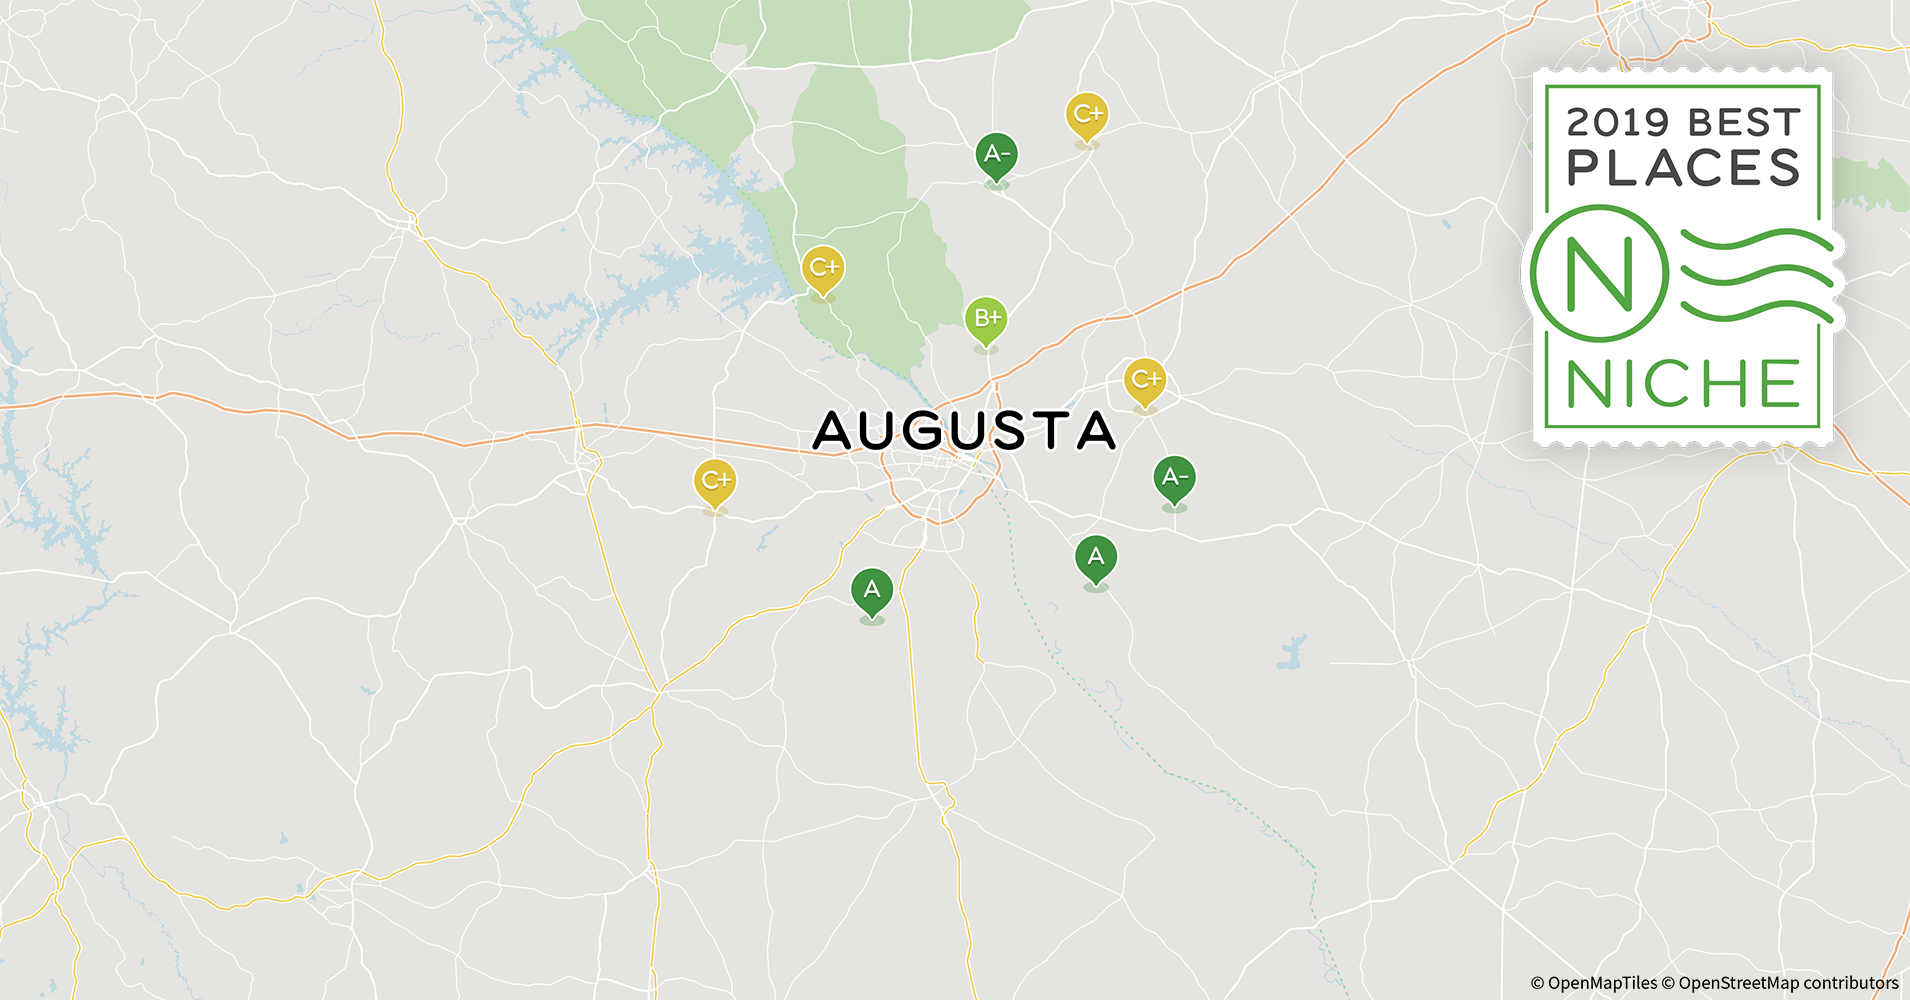 2019 Best Places to Live in the Augusta Area - Niche